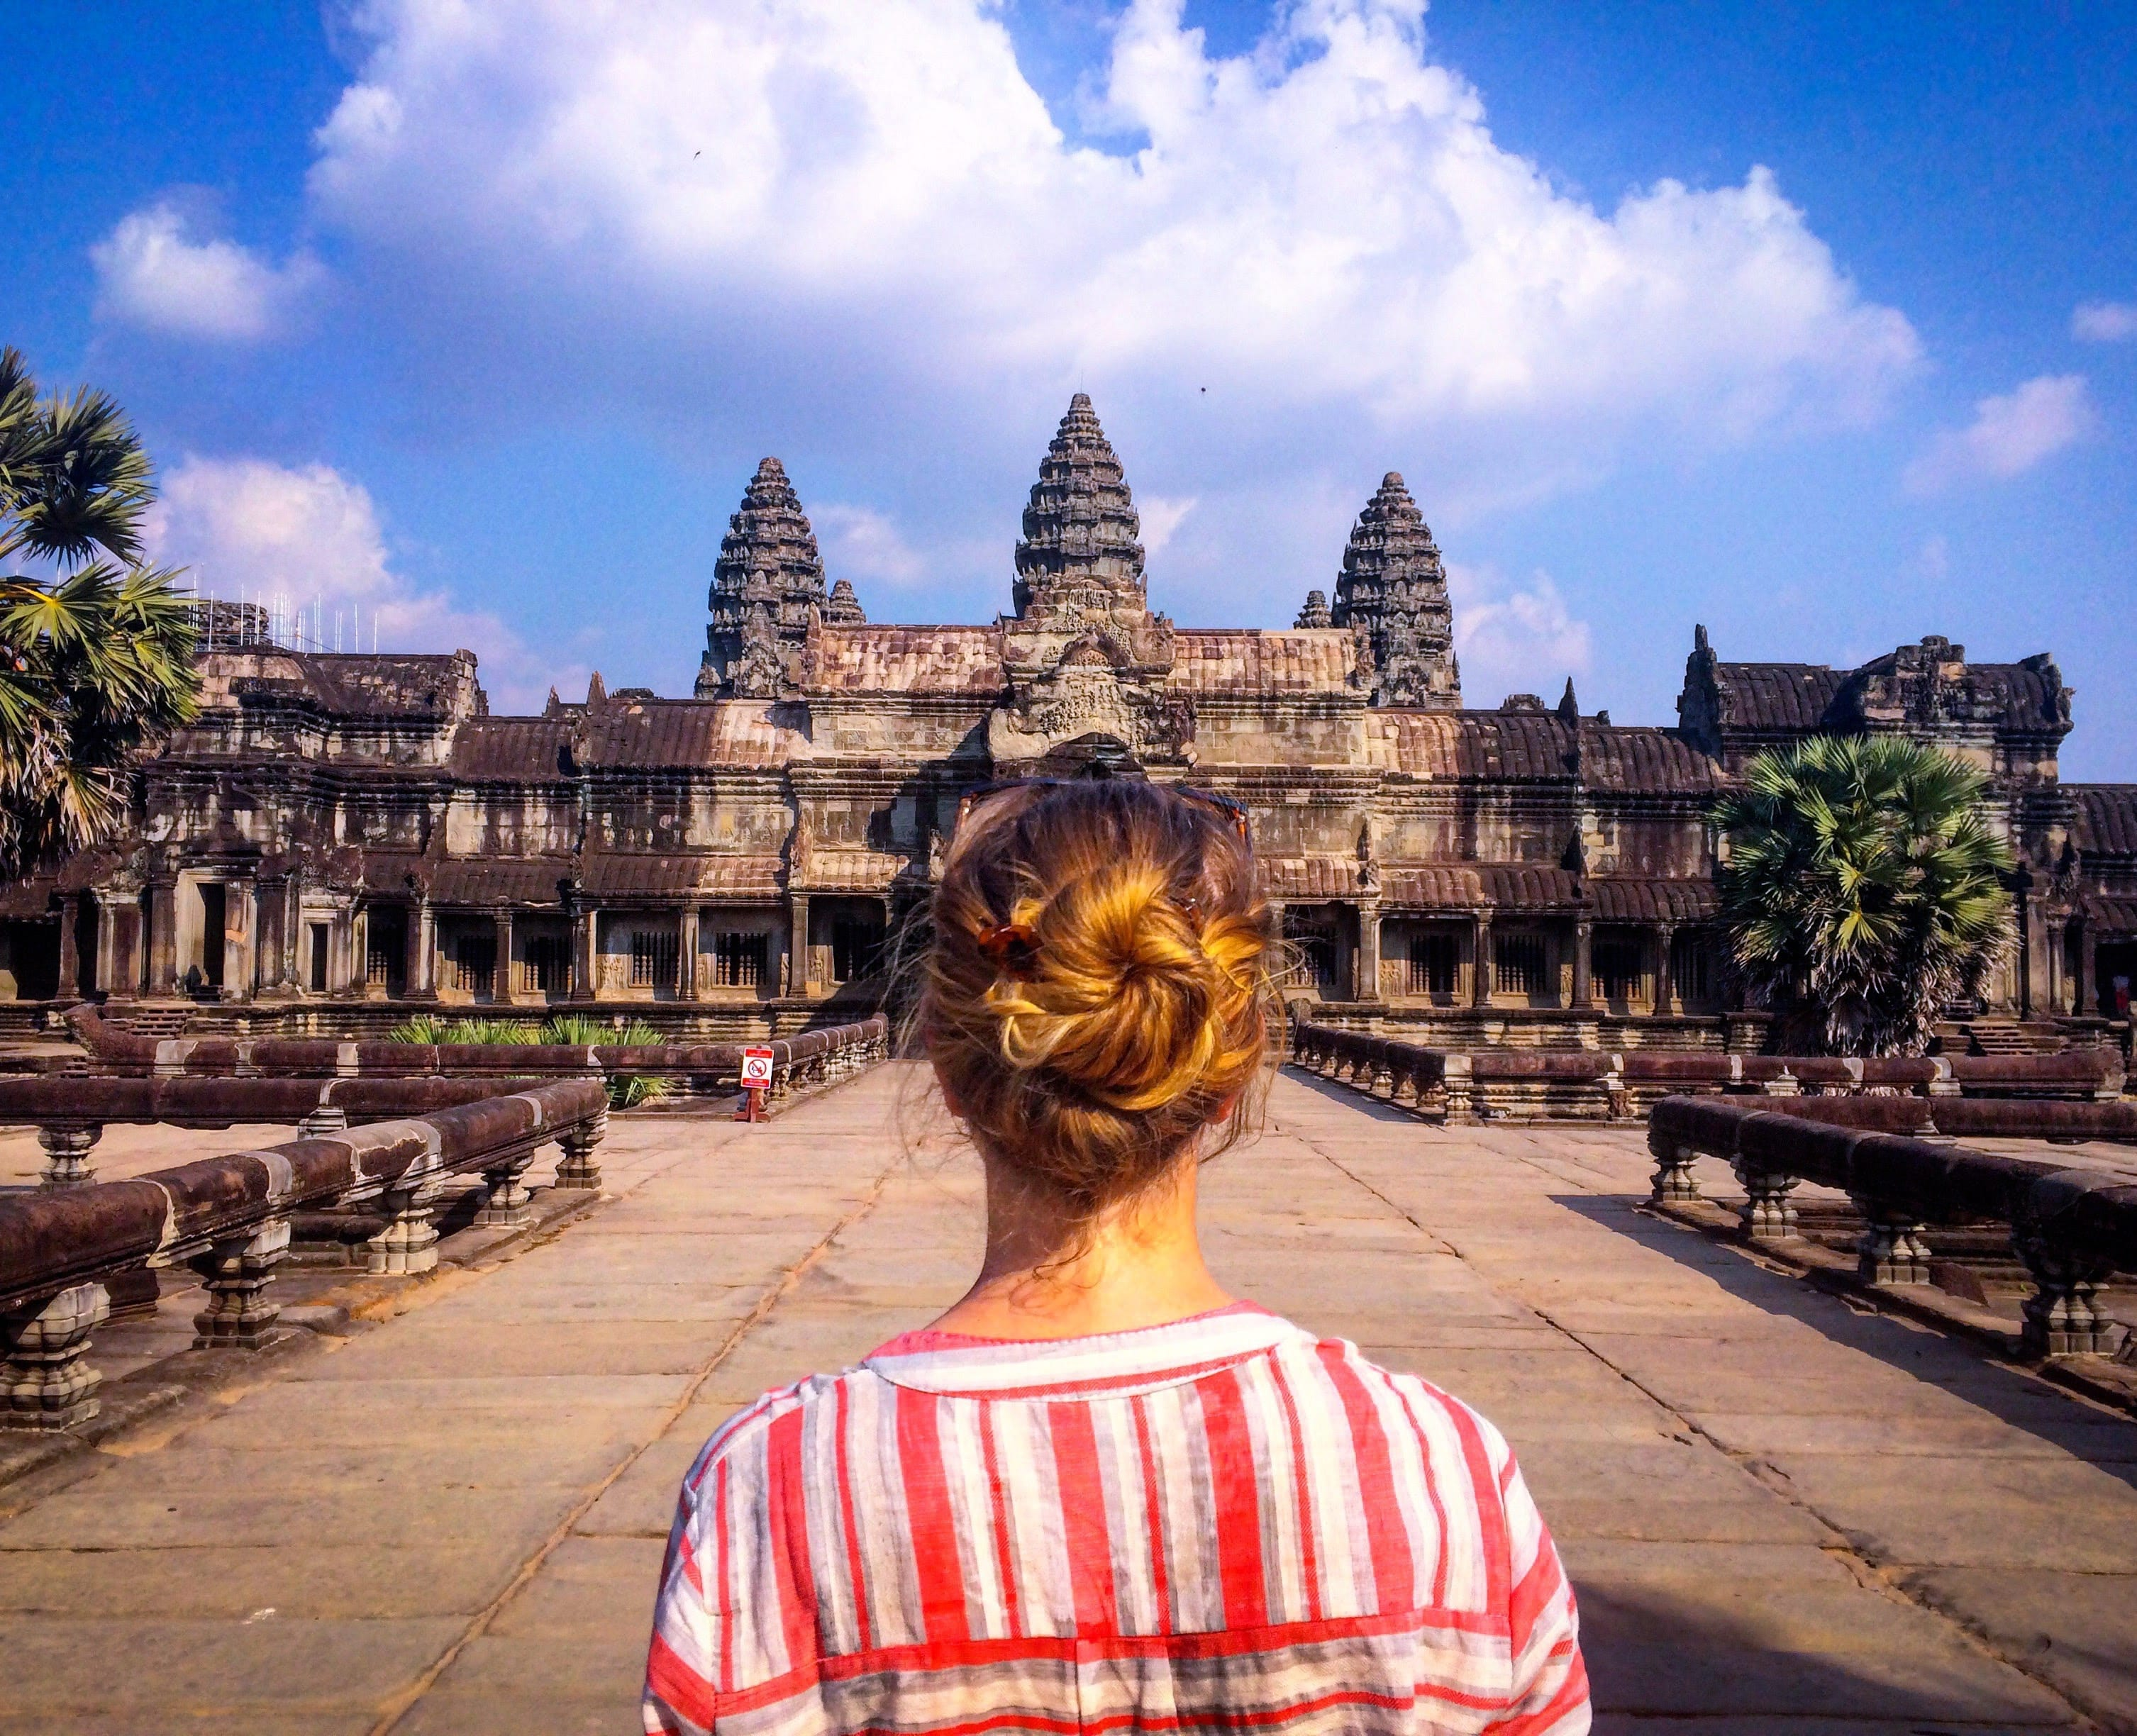 female traveler gazing at ancient building